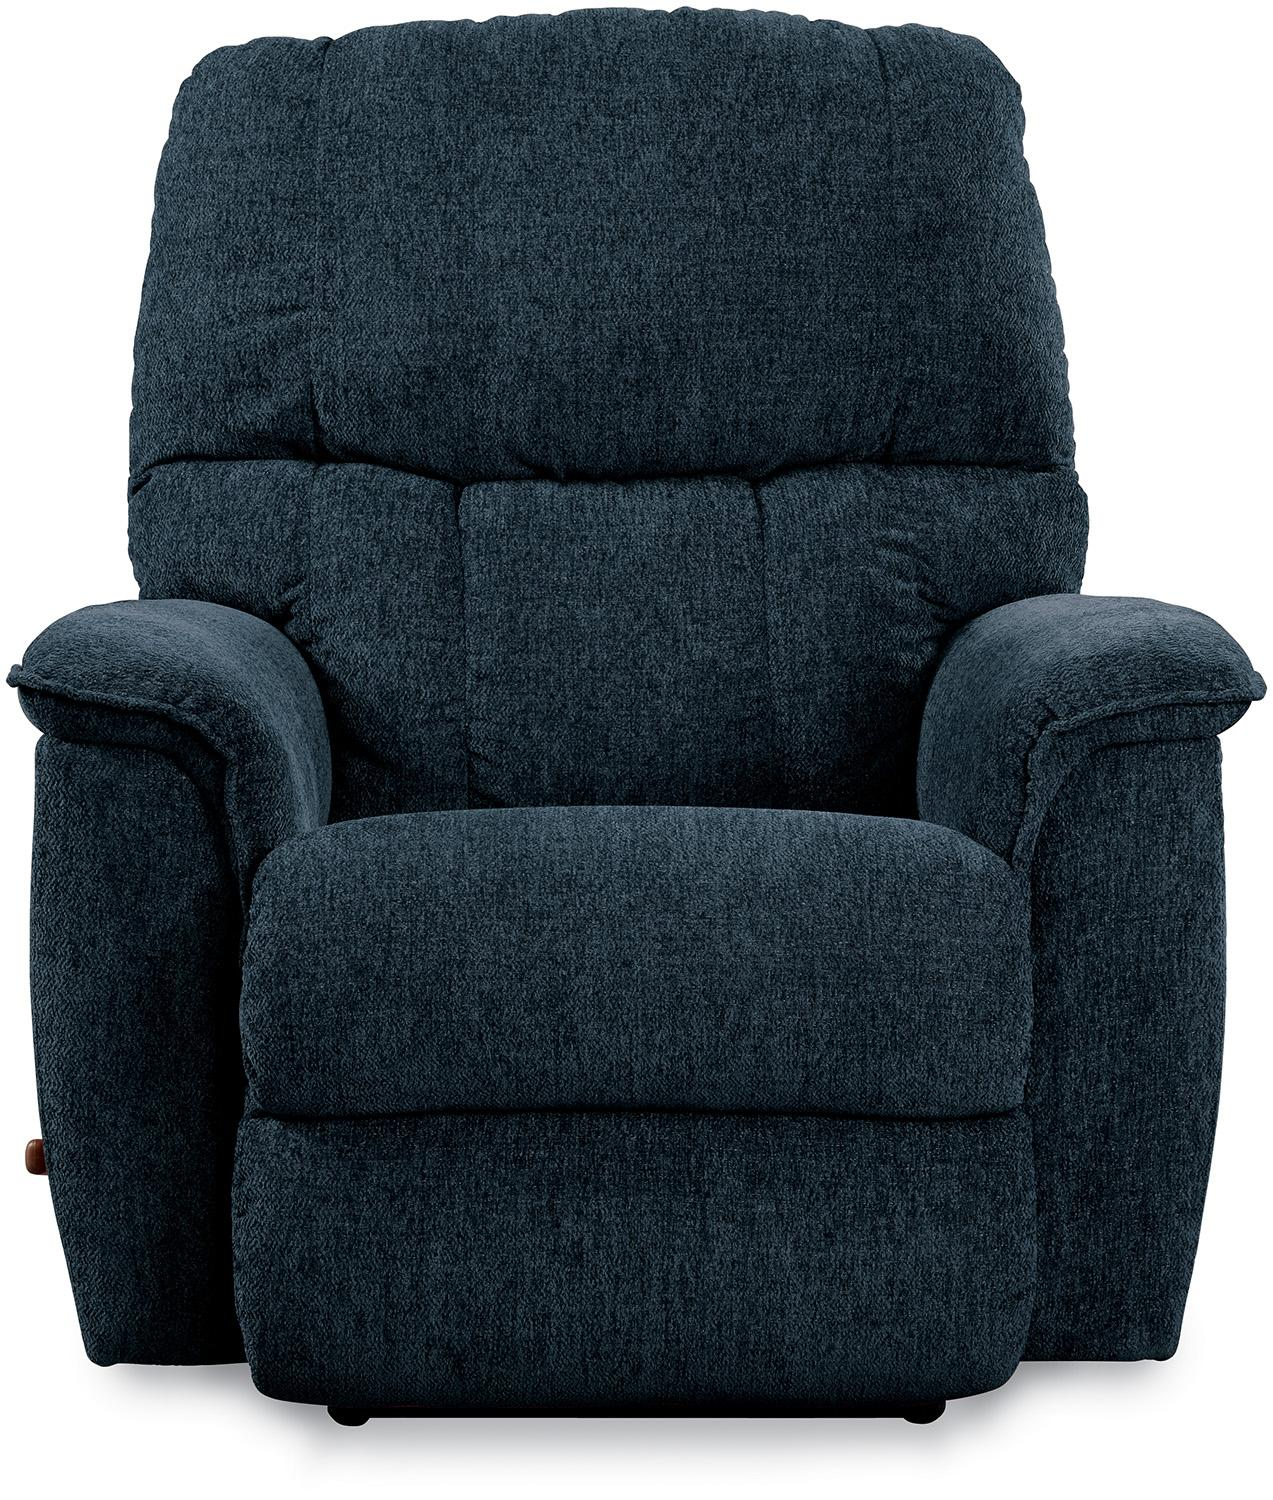 La Z Boy Lawrence Reclina Glider Swivel Rocker Recliner